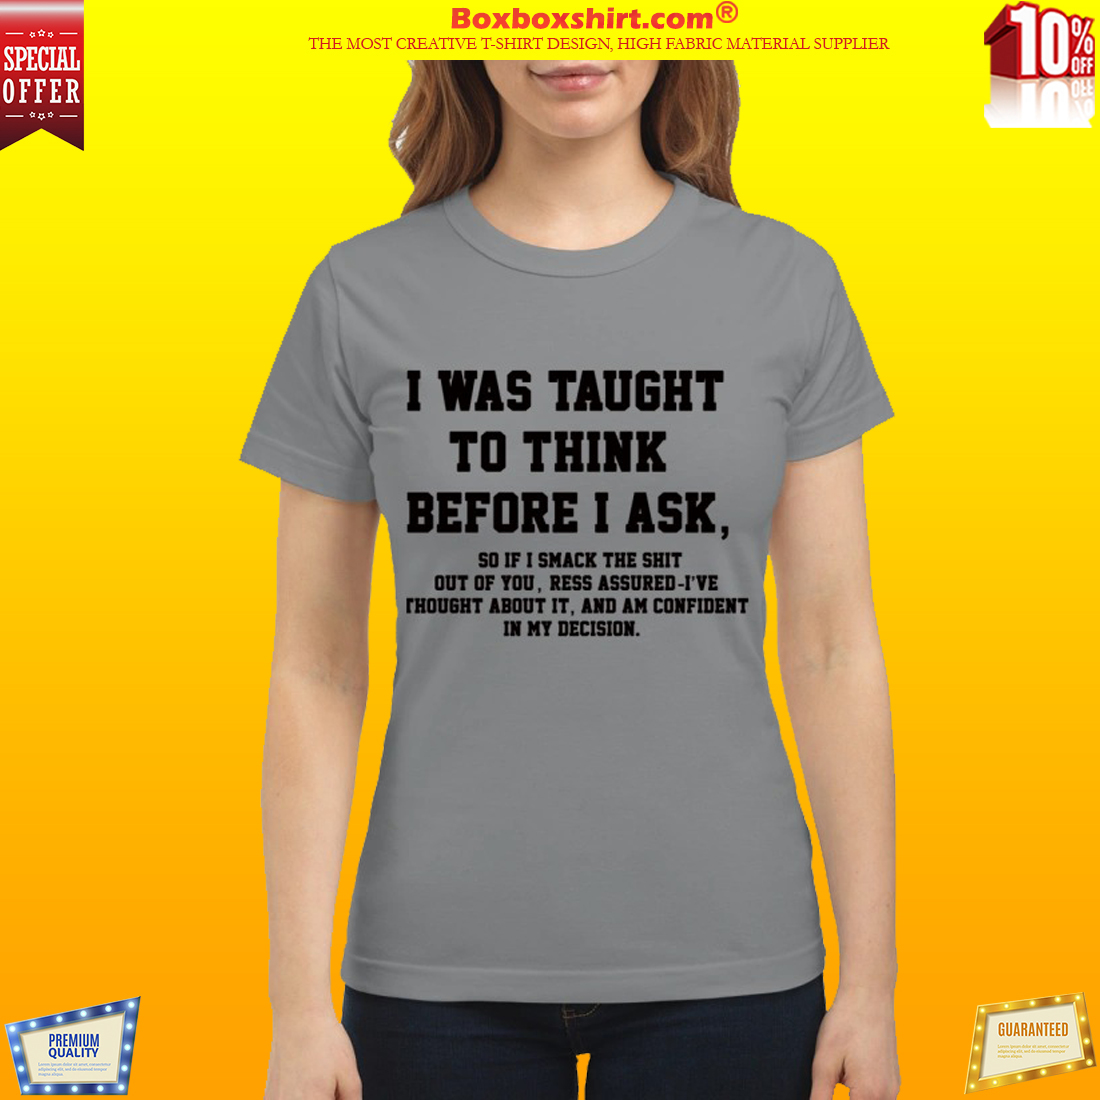 I was taught to think before I ask classic shirt